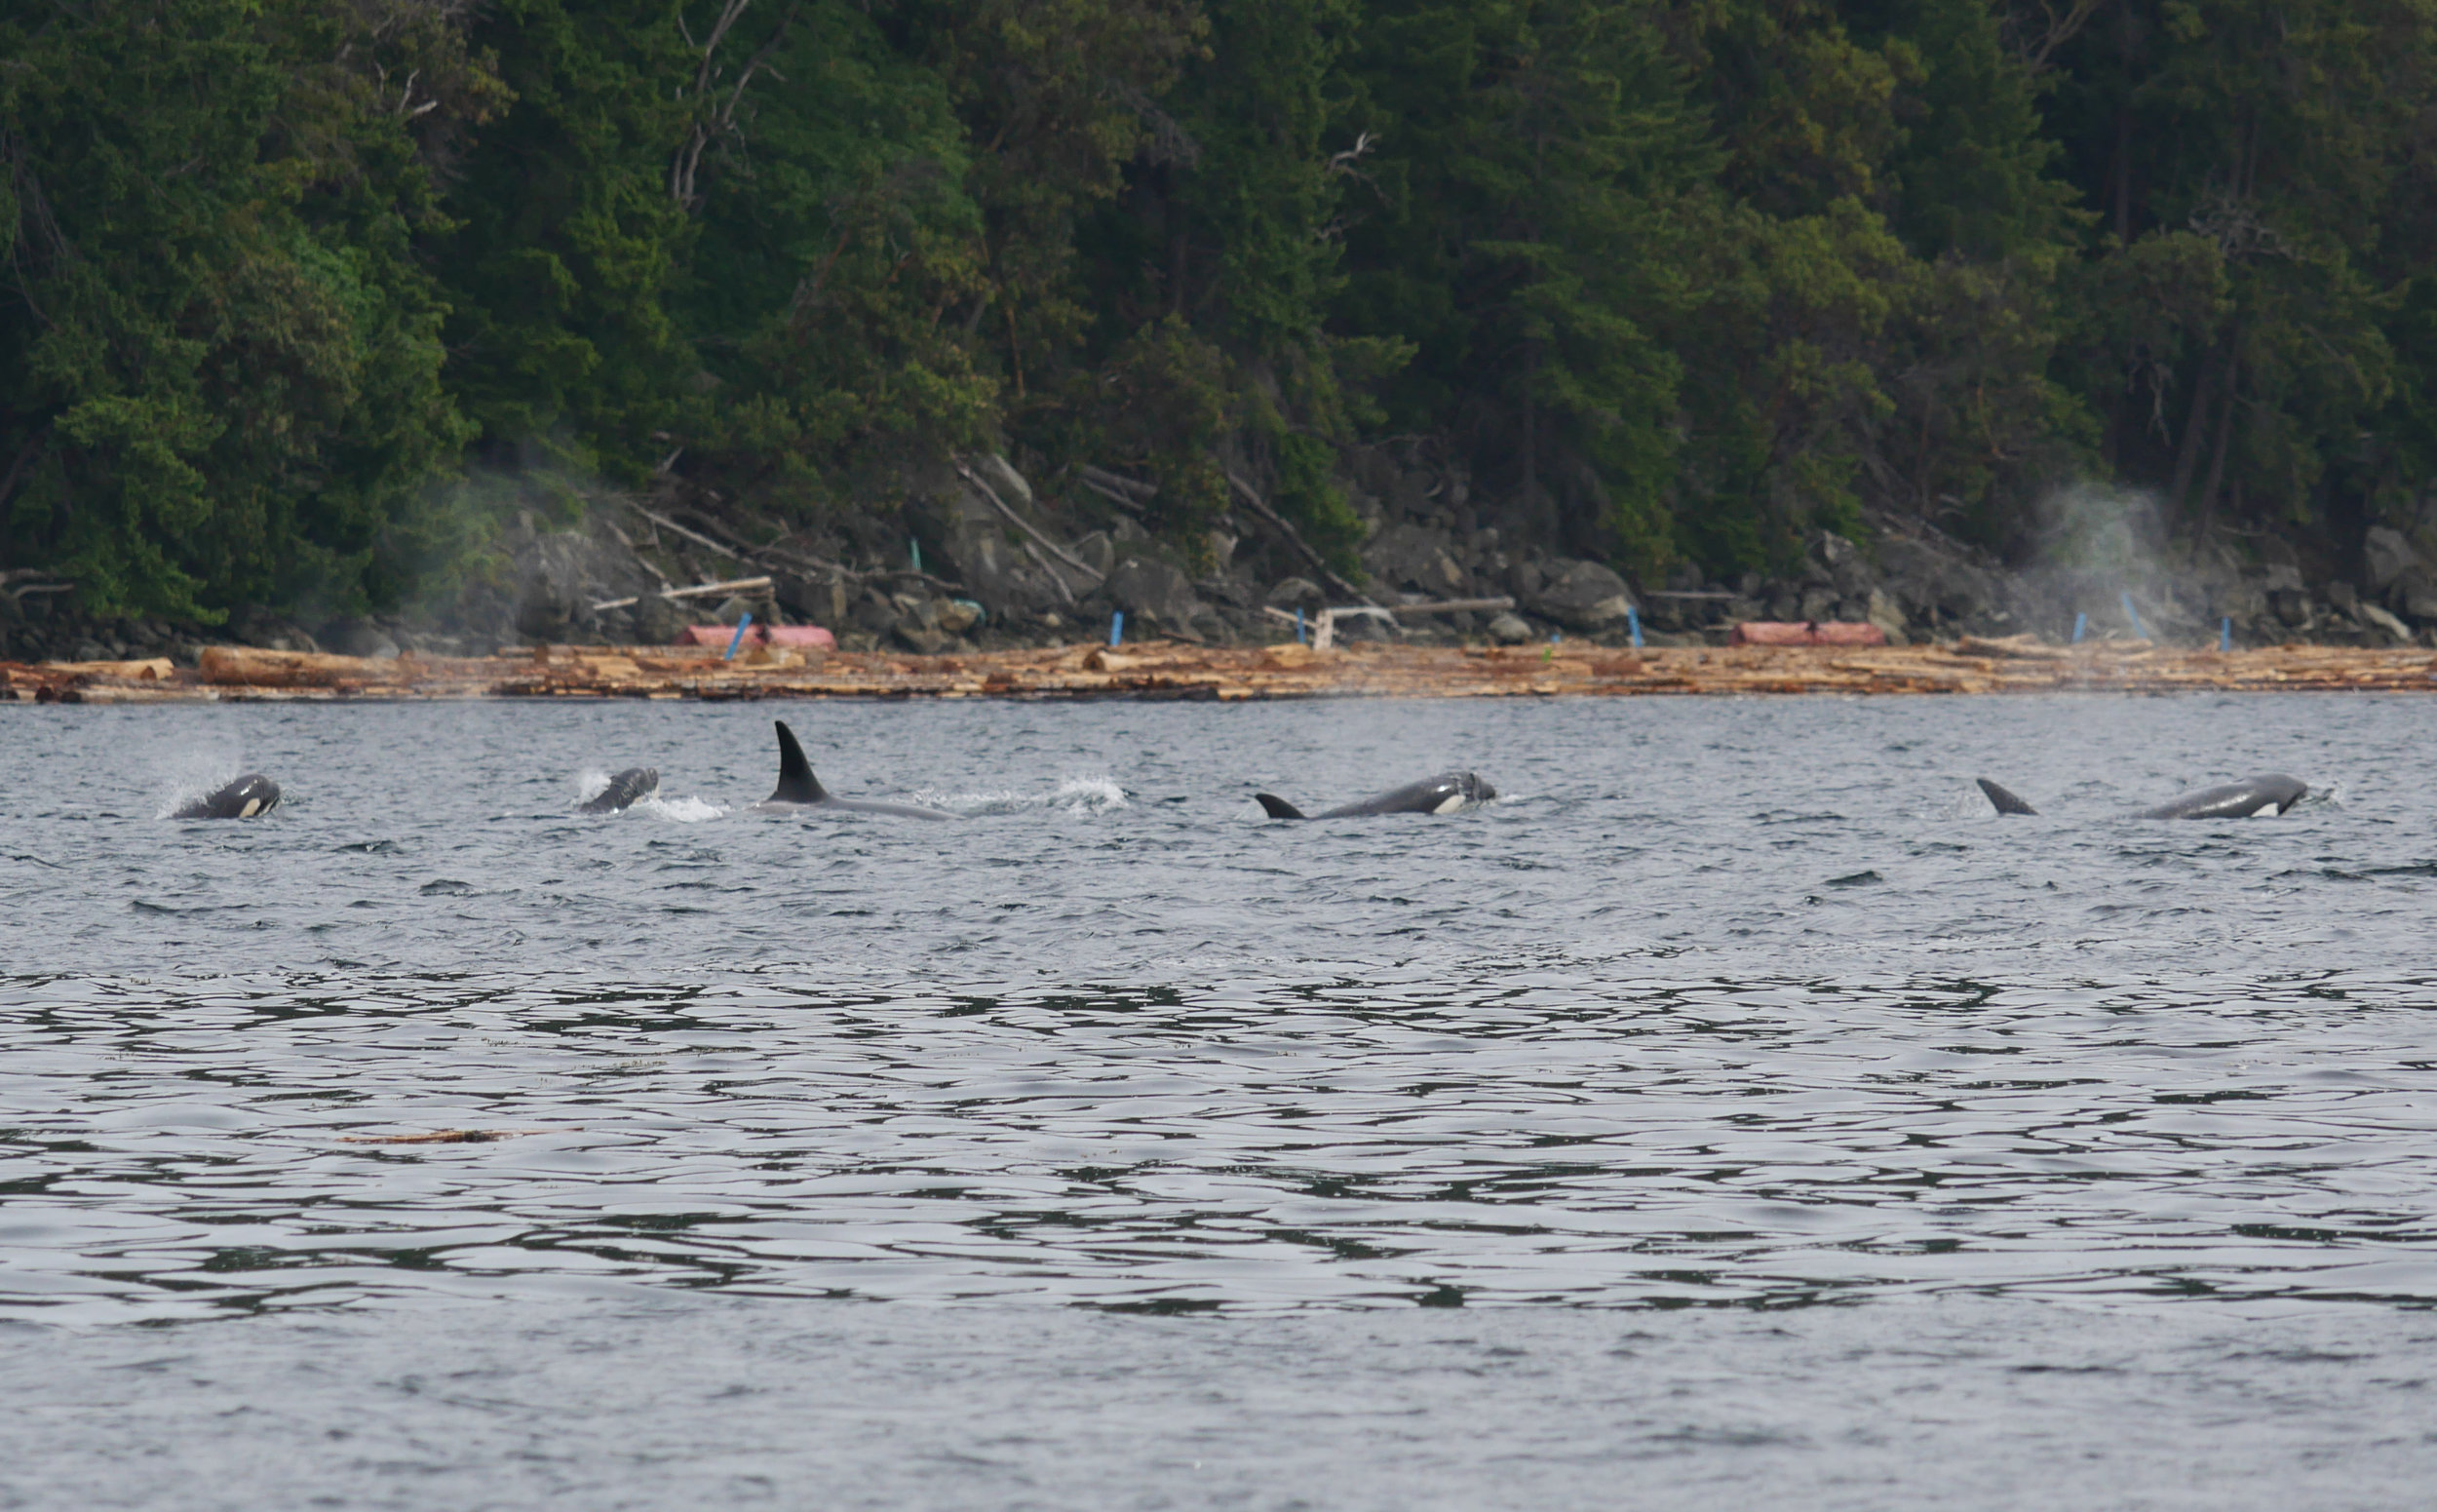 Five of the whales surfacing together heading towards Dodds Narrows! Photo by Rodrigo Menezes.